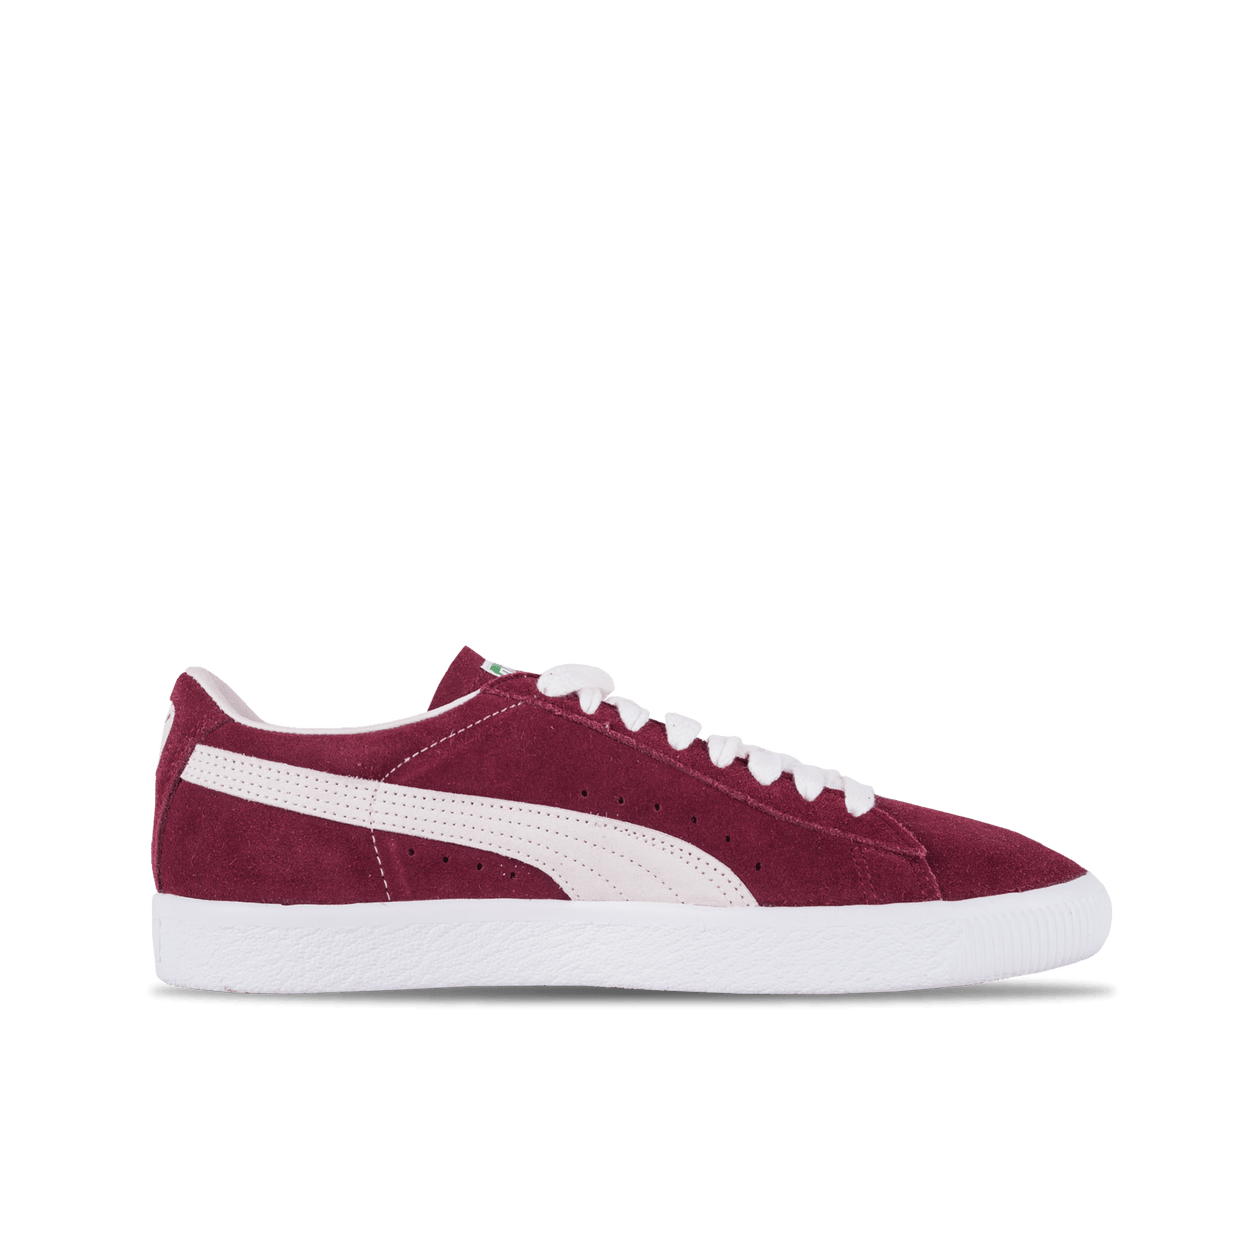 Suede 90681 - Bordeaux/White